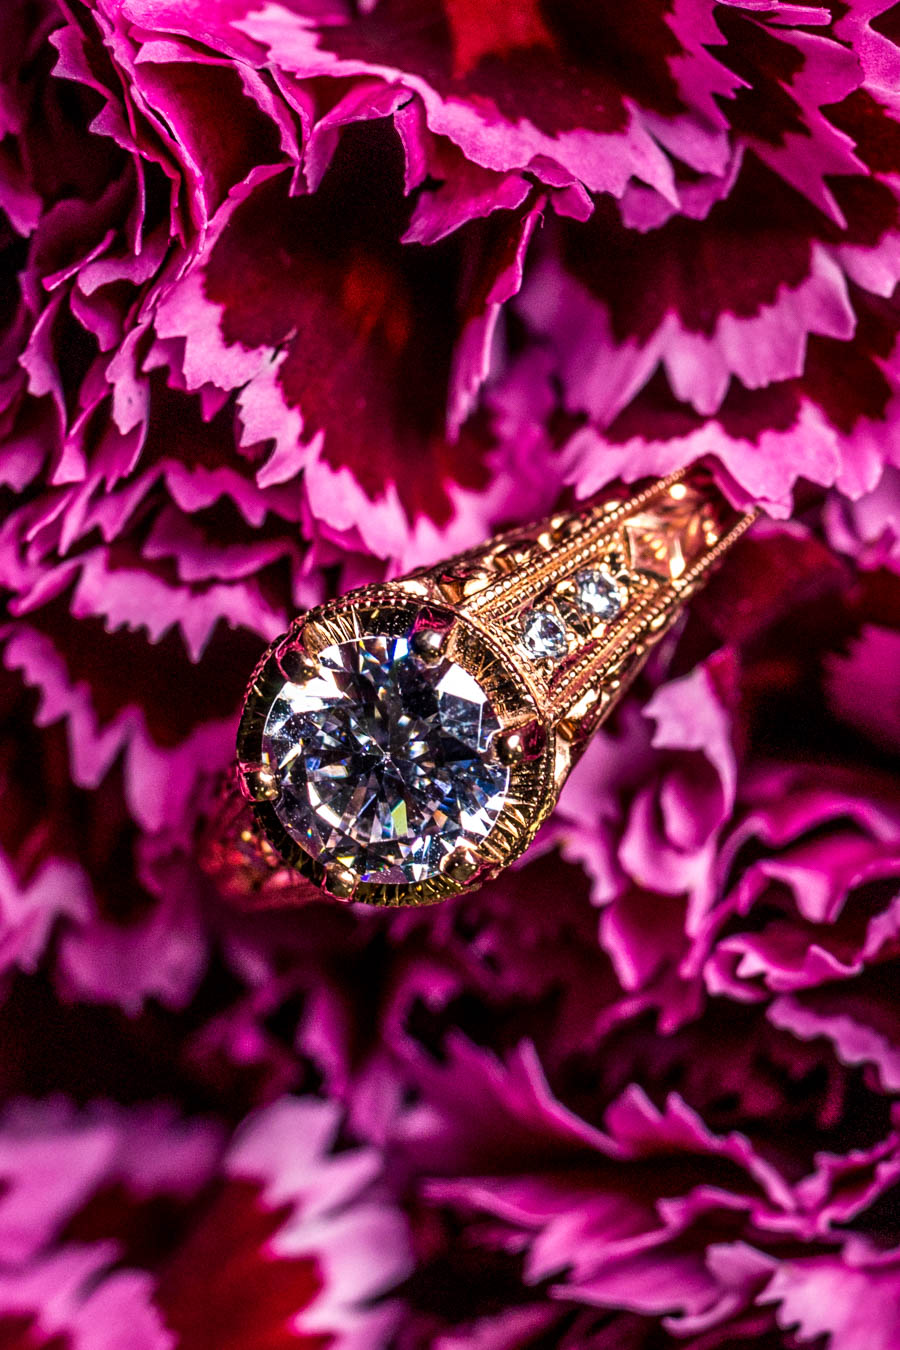 Heart of the Vineyard Ring / Image: Catherine Viox{ }// Published: 10.8.19